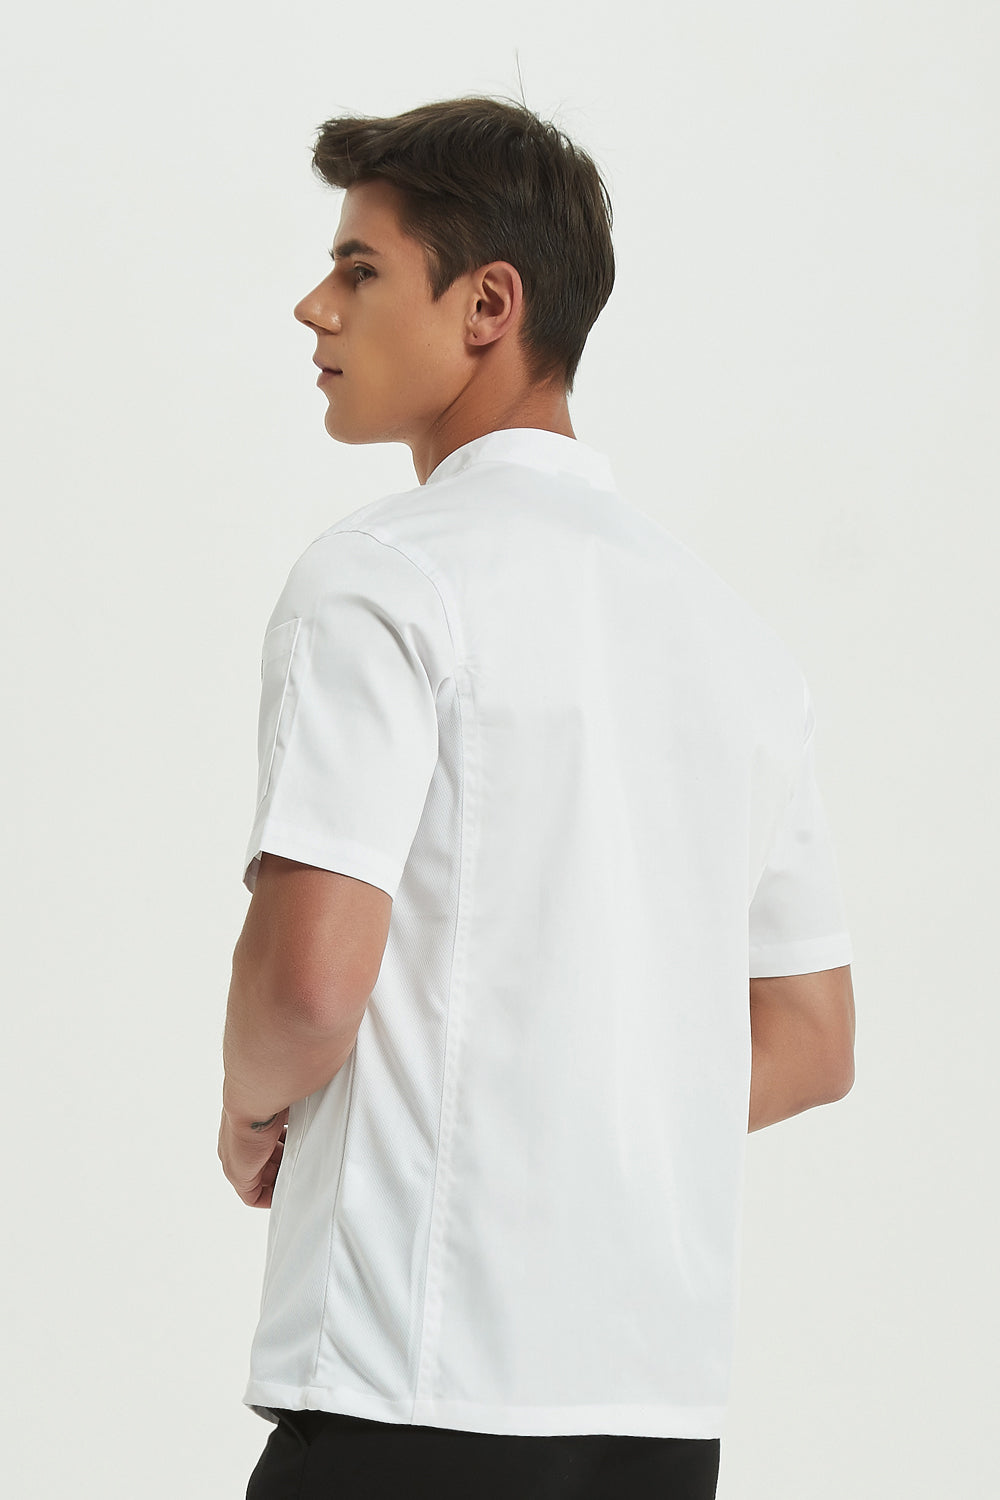 Mint White Chef Jacket with Dri-fit, Back View